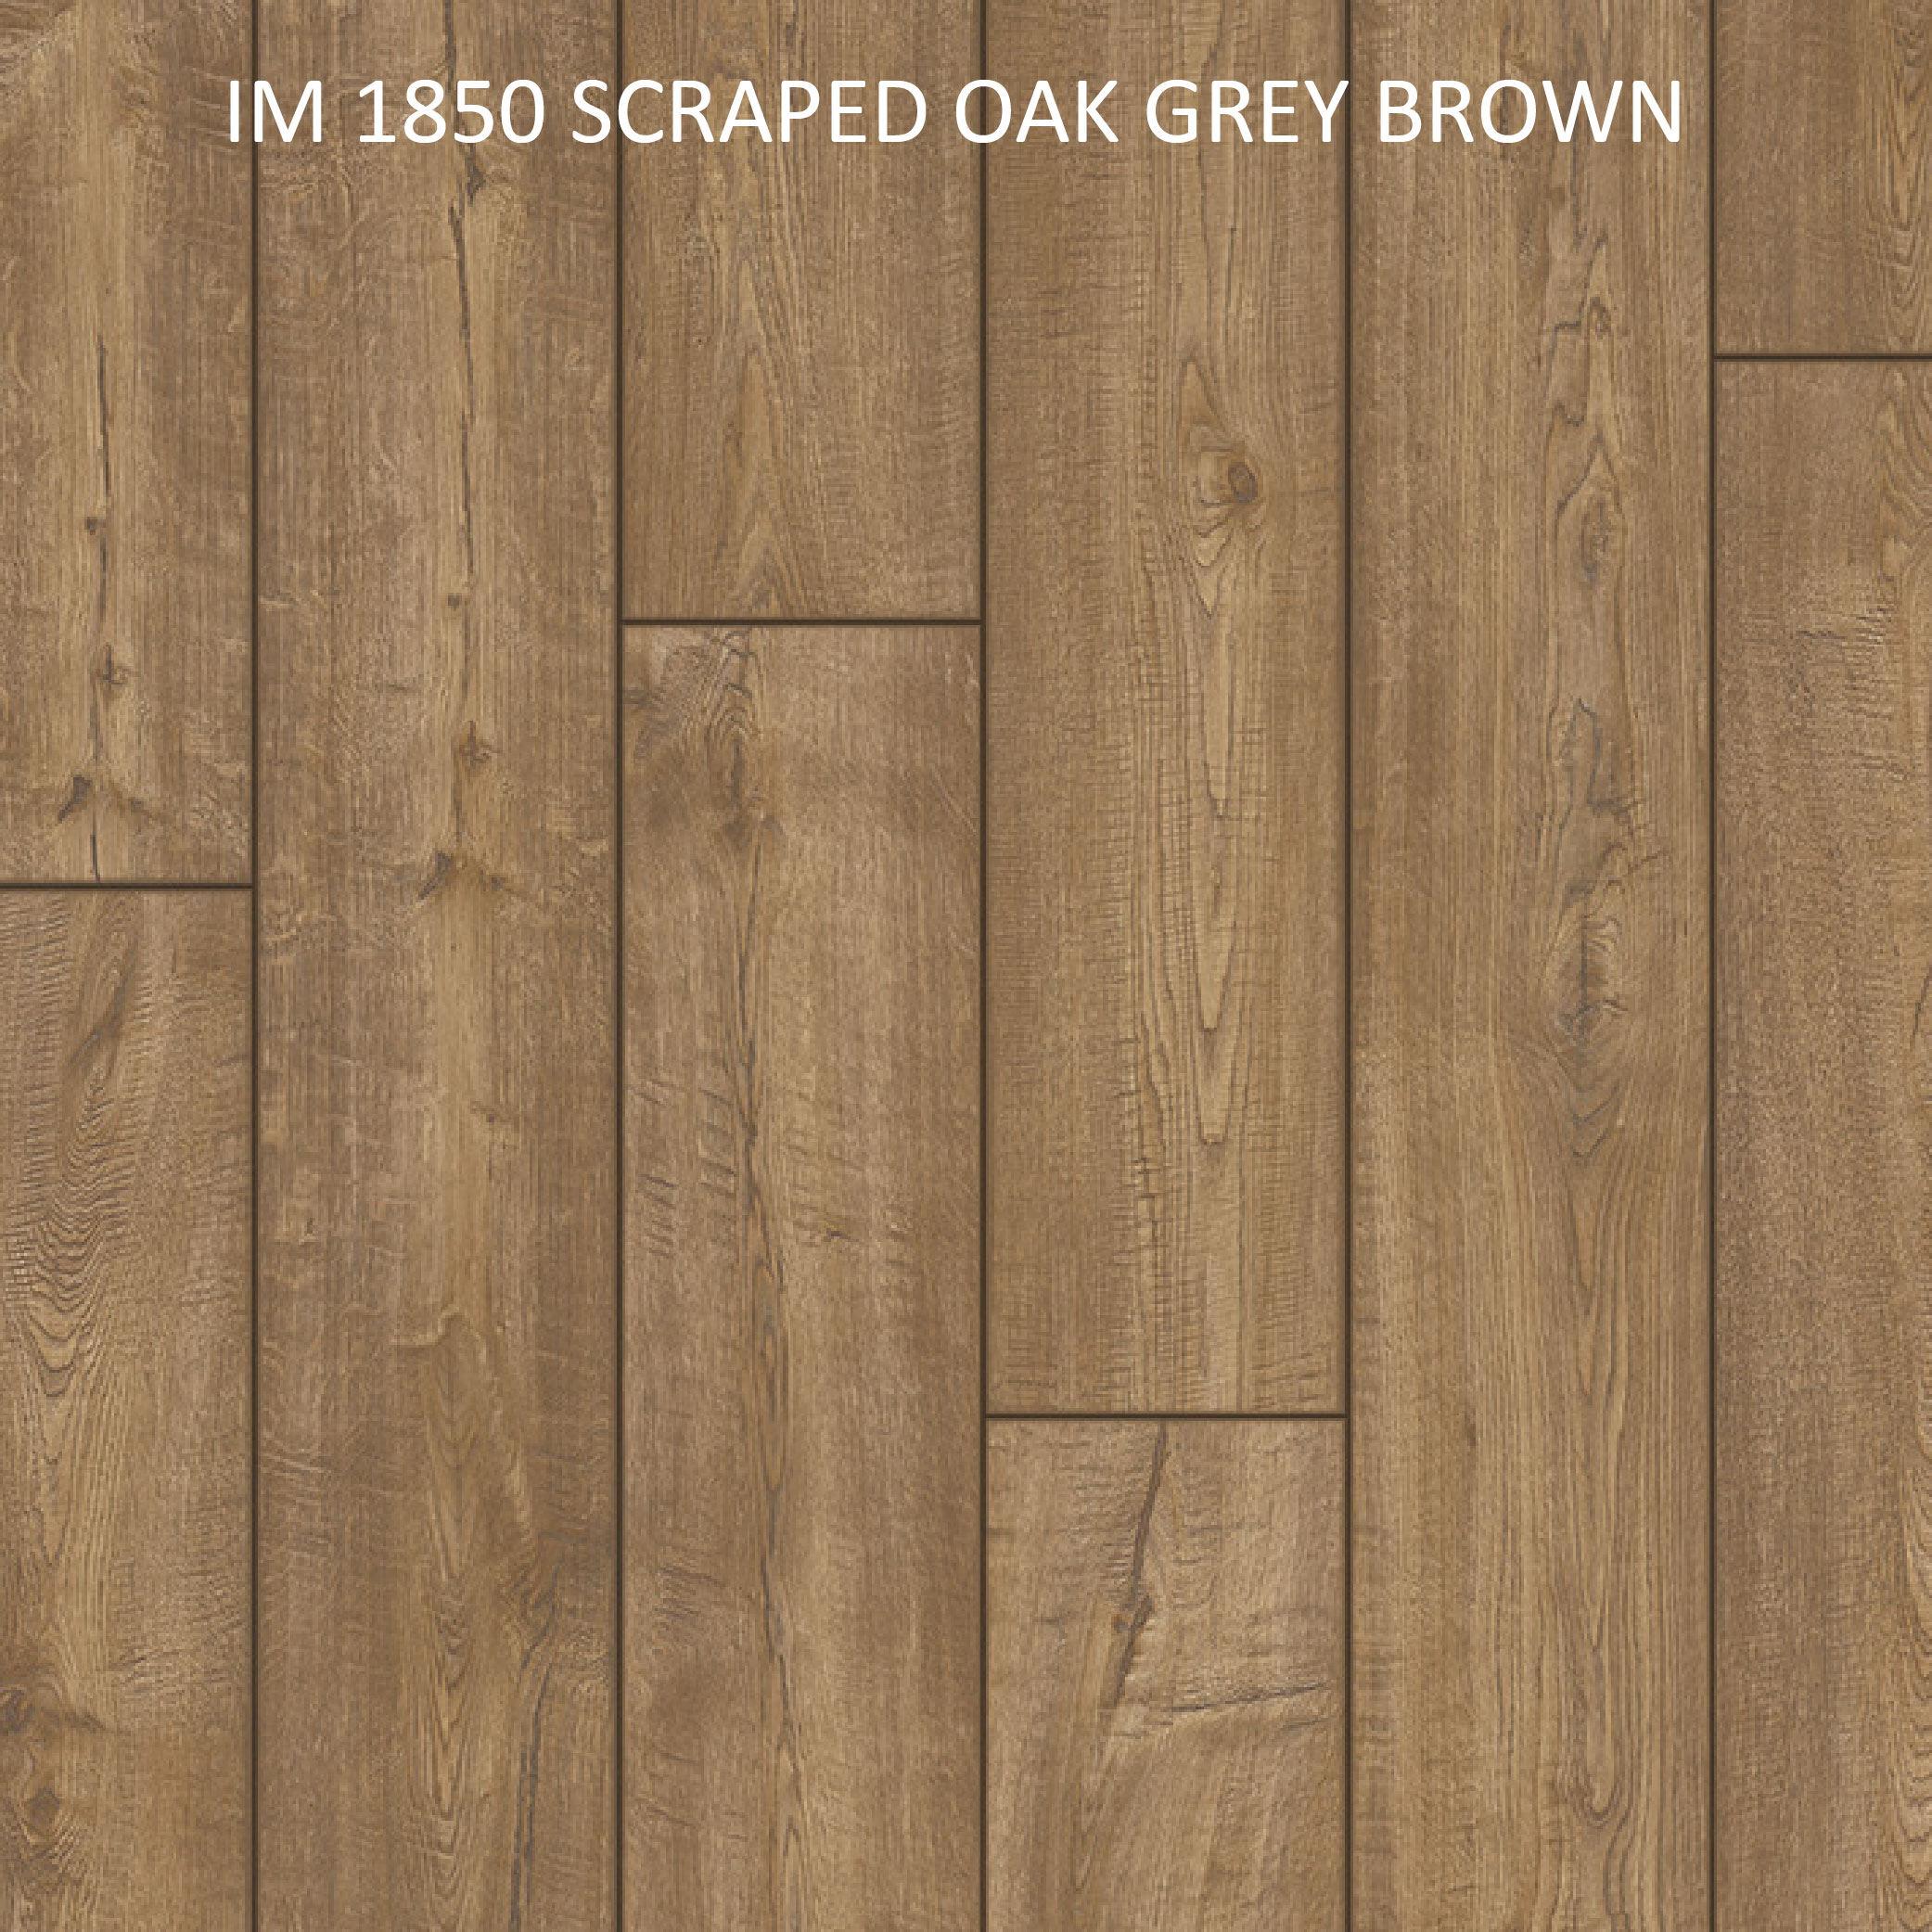 IM 1850 SCRAPED OAK GREY BROWN-01